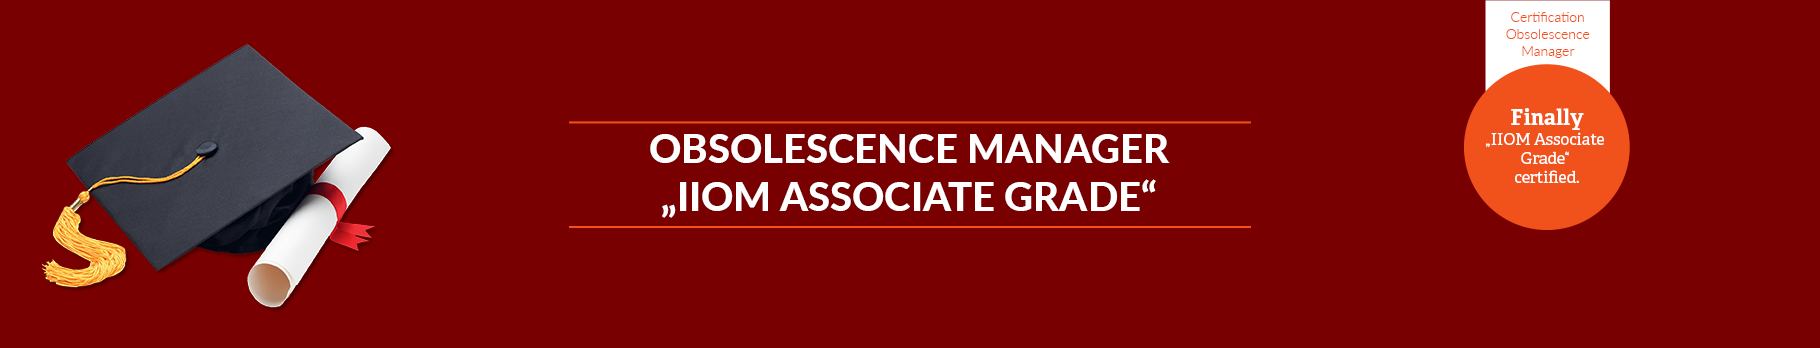 "Obsolescence Manager ""IIOM Certification"""